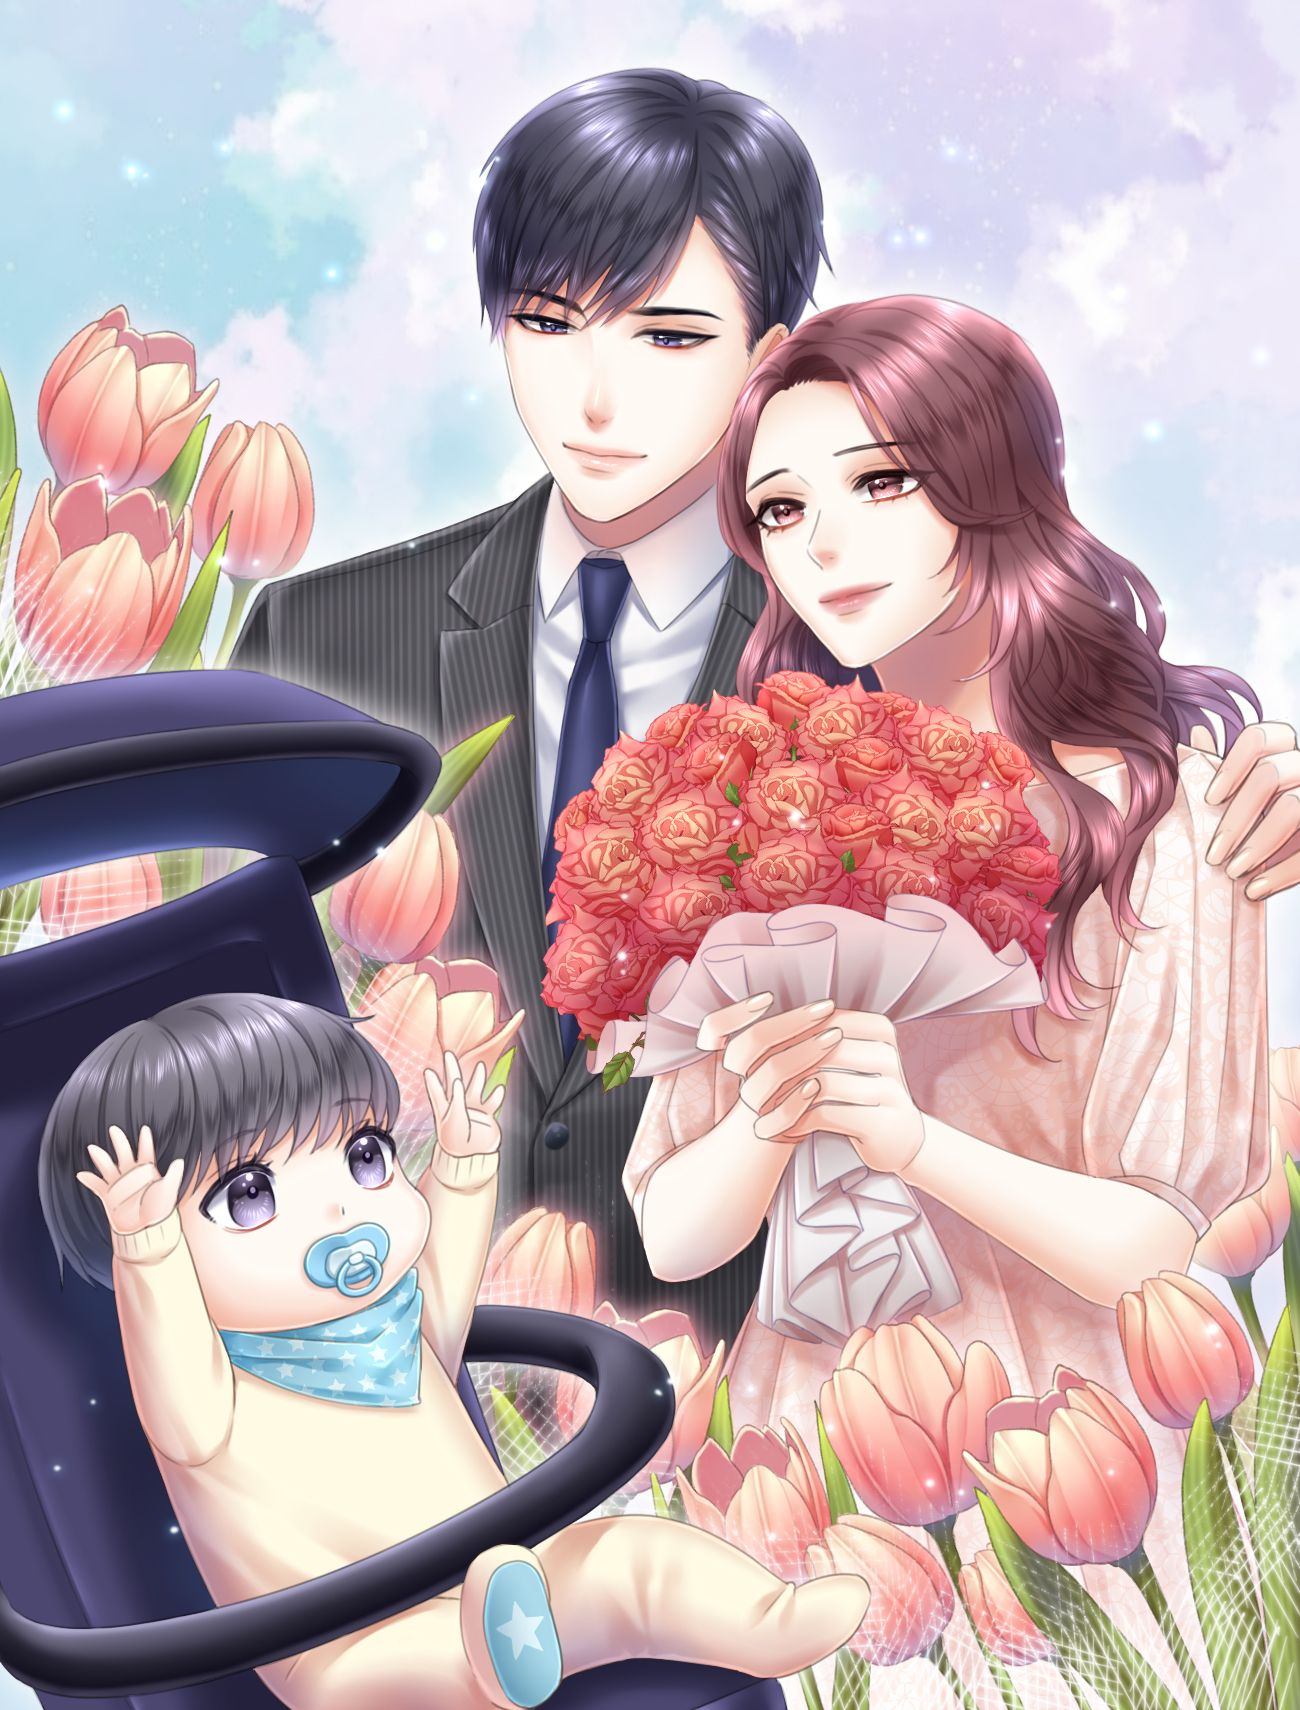 속지 마세요 Anime love story, Anime family, Anime romance